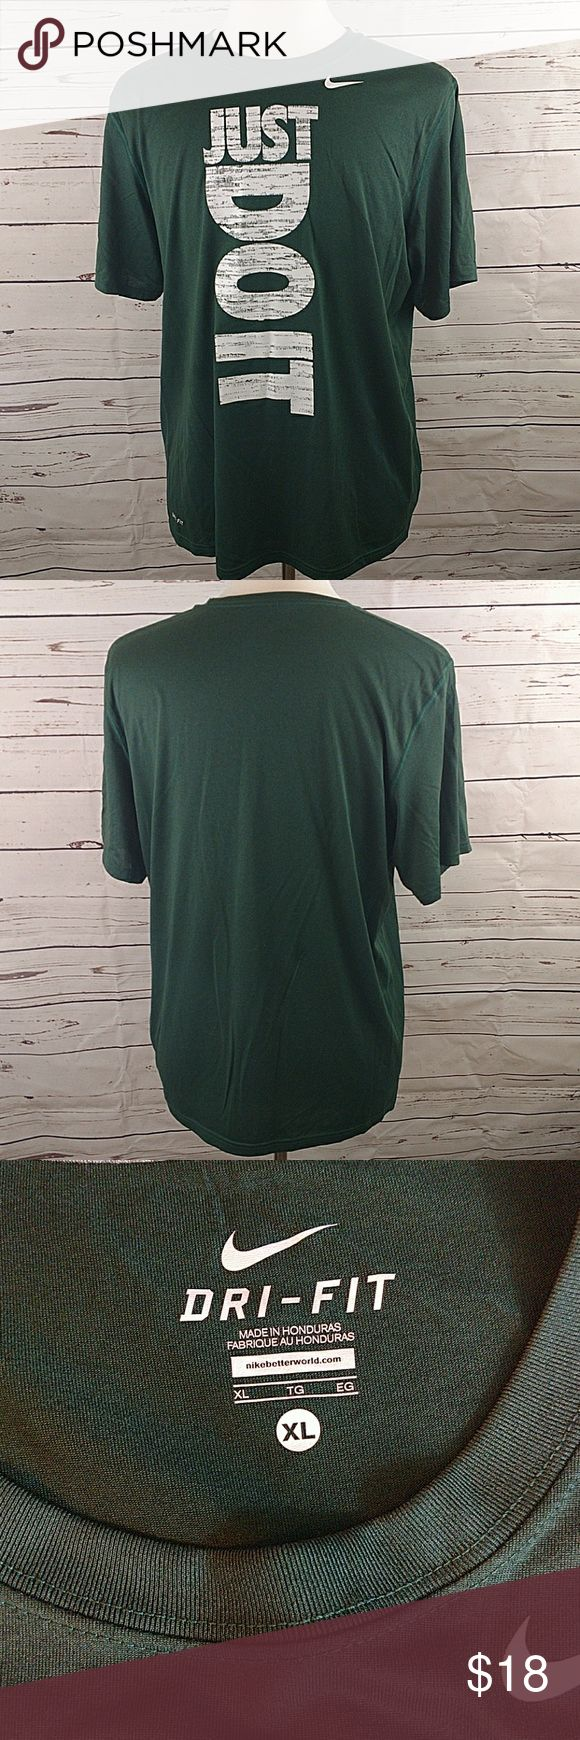 "NIKE DRI FIT MENS GREEN SHORT SLEEVE T SHIRT NIKE DRI FIT MENS GREEN SHORT SLEEVE T SHIRT MADE FROM 100% POLYESTER  SIZE XL ARMPIT TO ARMPIT: 23"" COLLAR TO HEM: 30""  EXCELLENT USED CONDITION WITH NO RIPS TEARS OR STAINS  #1325  * Please Remember all Clothing Items may fit differently depending on Brand, Fit, Use or Prior customization. We strongly urge our customer's to check measurements first to guarantee proper fitting Nike Shirts Tees - Short Sleeve"